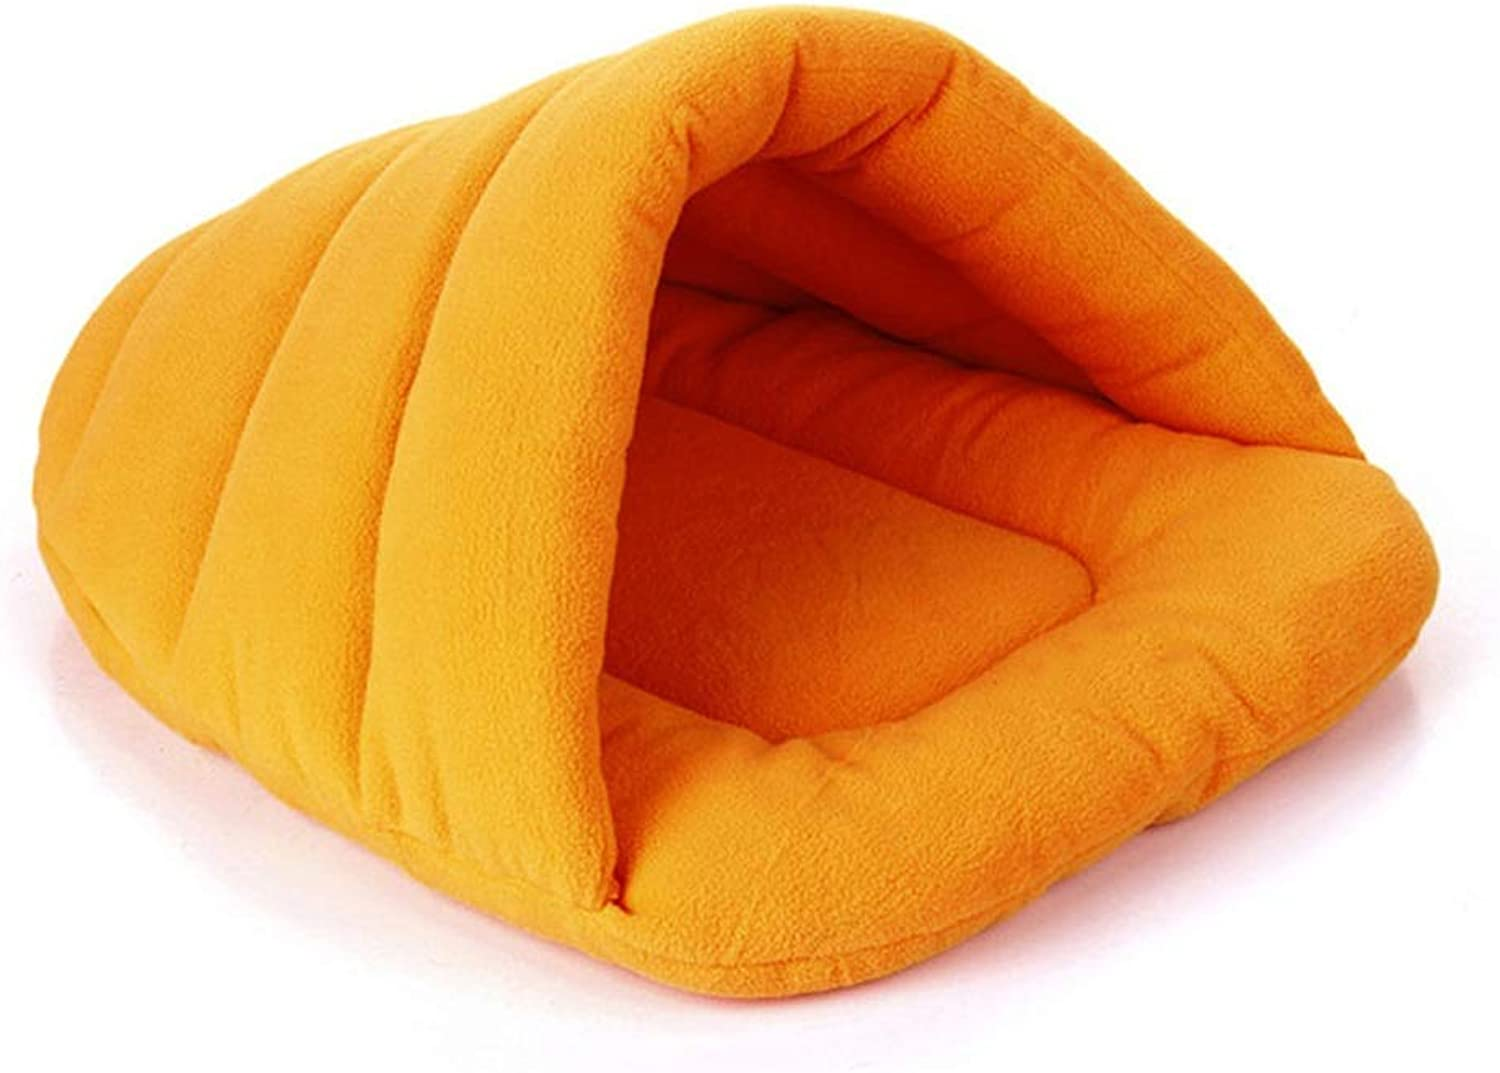 HKJhk Pet Dog Cat Hole Half Covered Soft Comfort Sleeping Bag Hug Cave Mat Bun Warm House Bed Blanket Pet Bed (color   Yellow, Size   L)